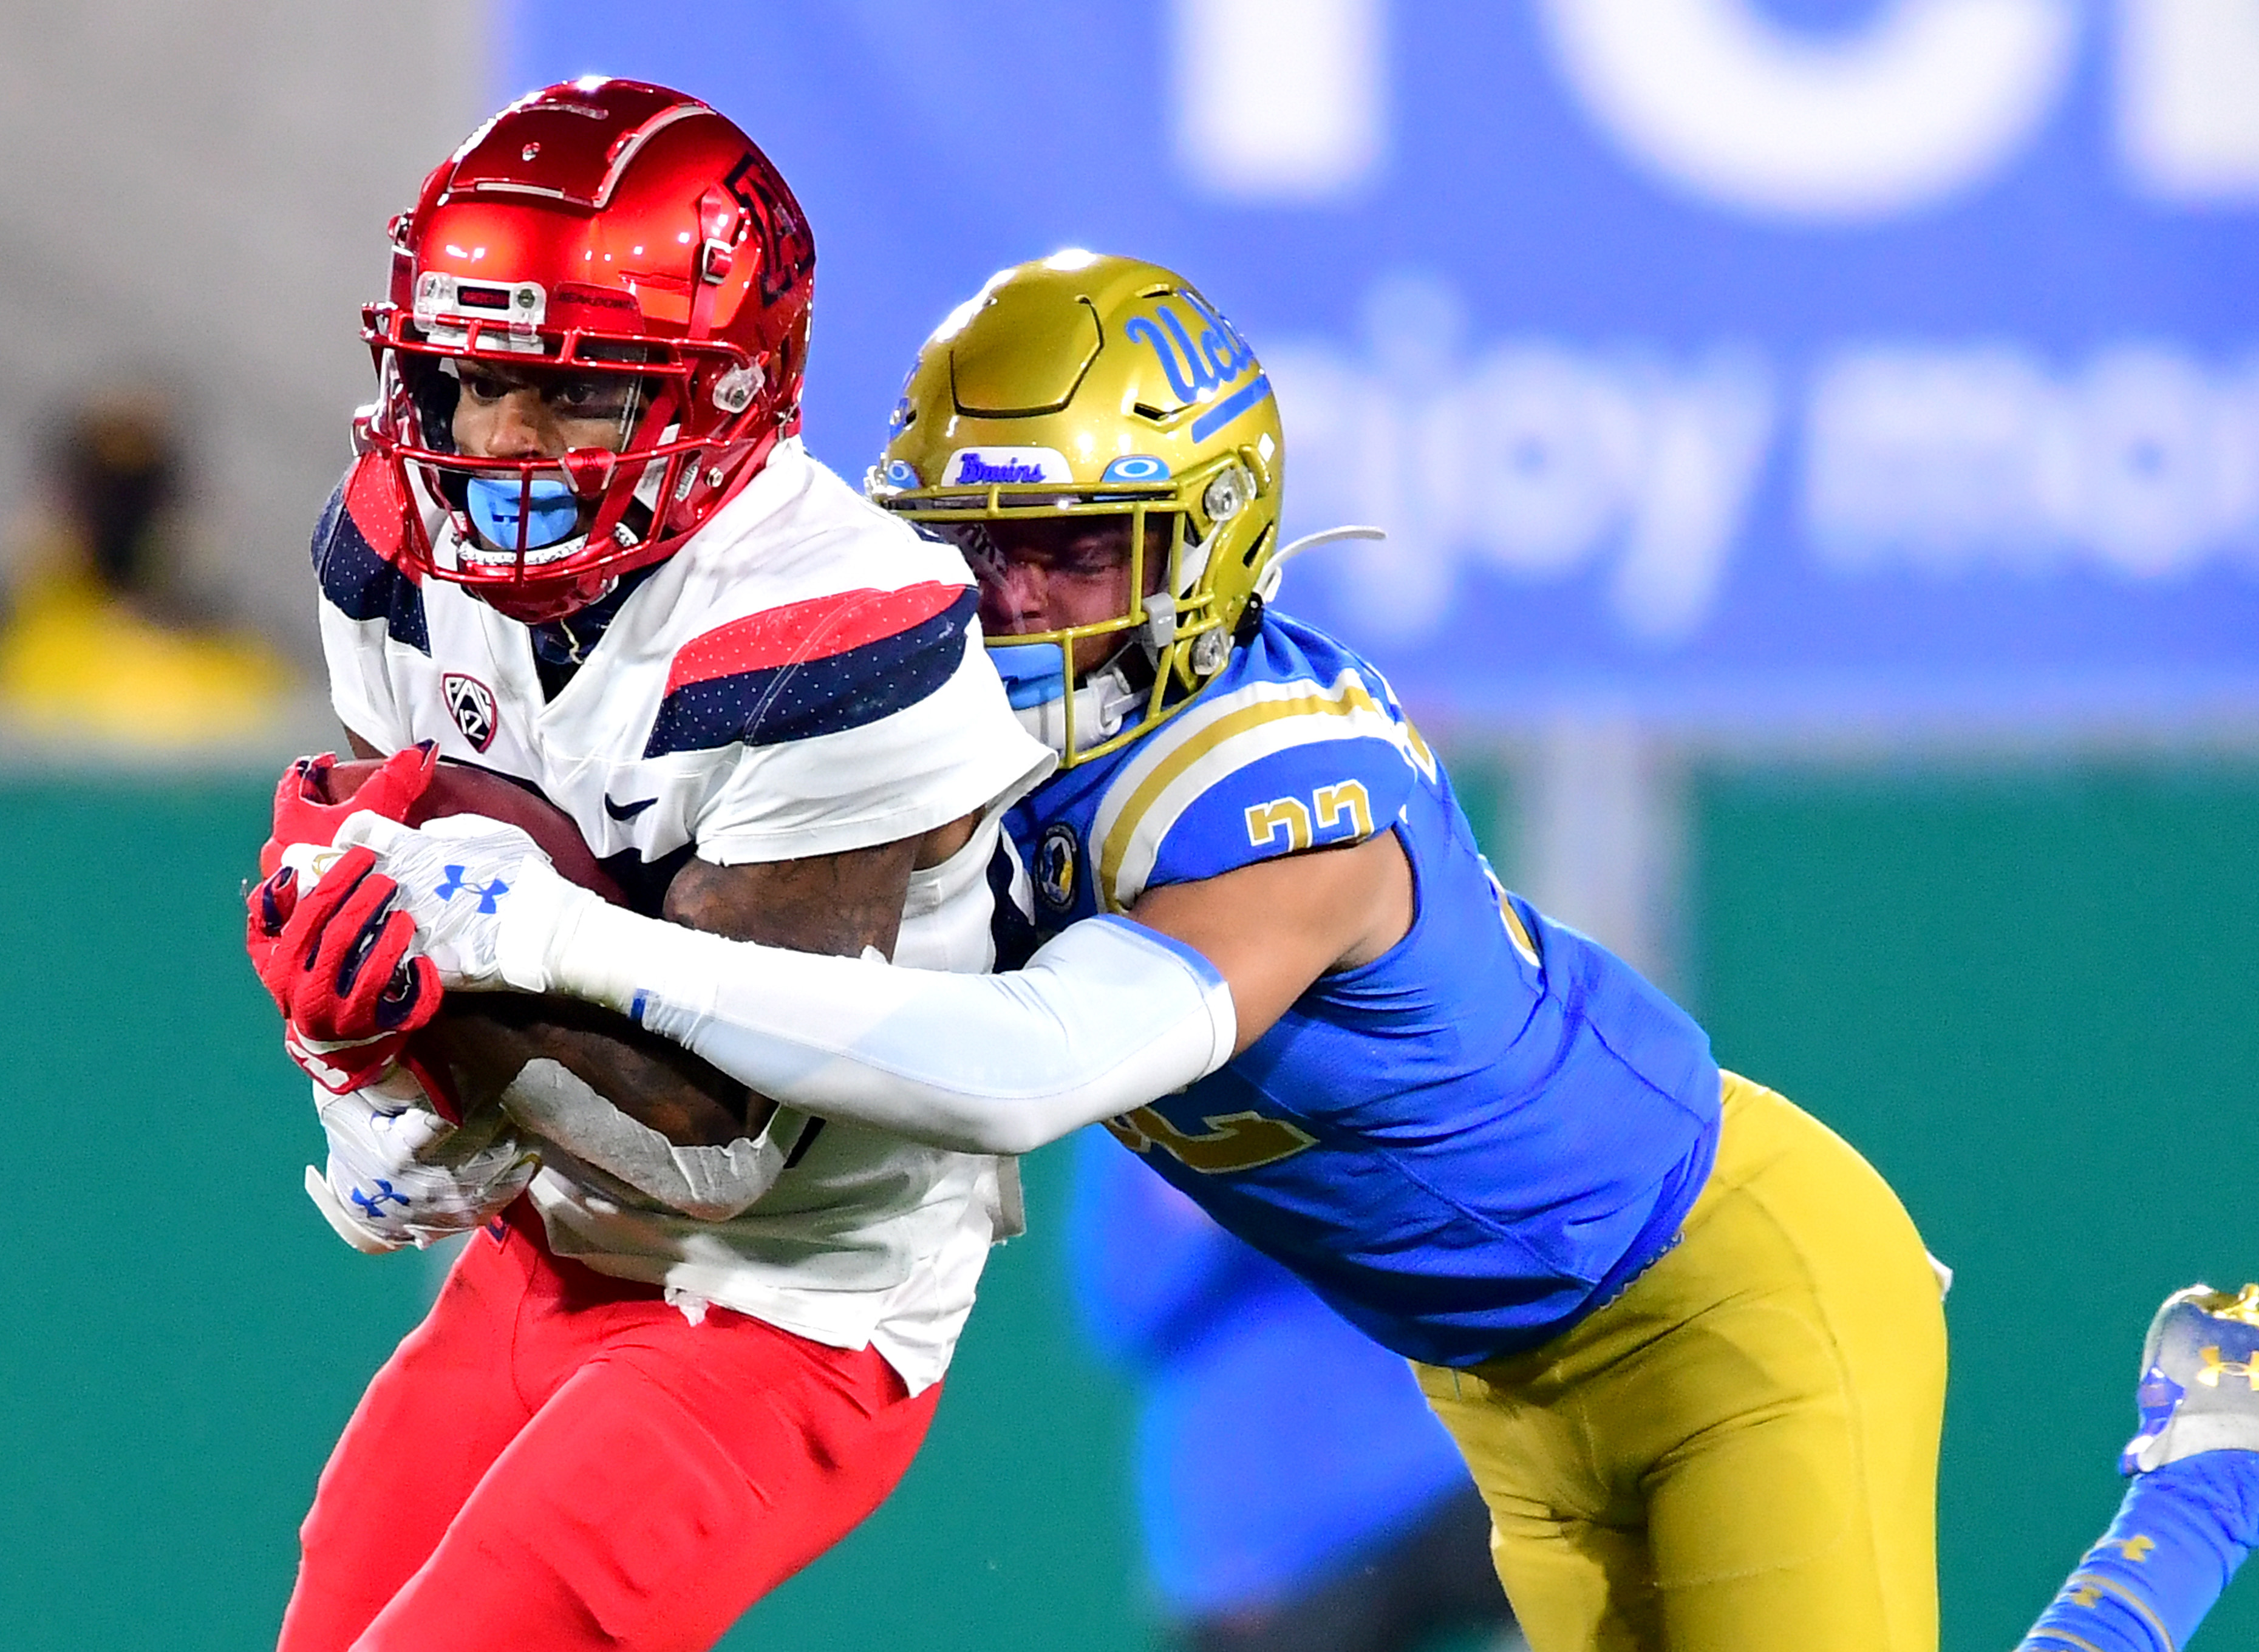 arizona-vs-ucla-football-score-game-predictions-odds-wildcats-bruins-time-tv-channel-pac12-2021